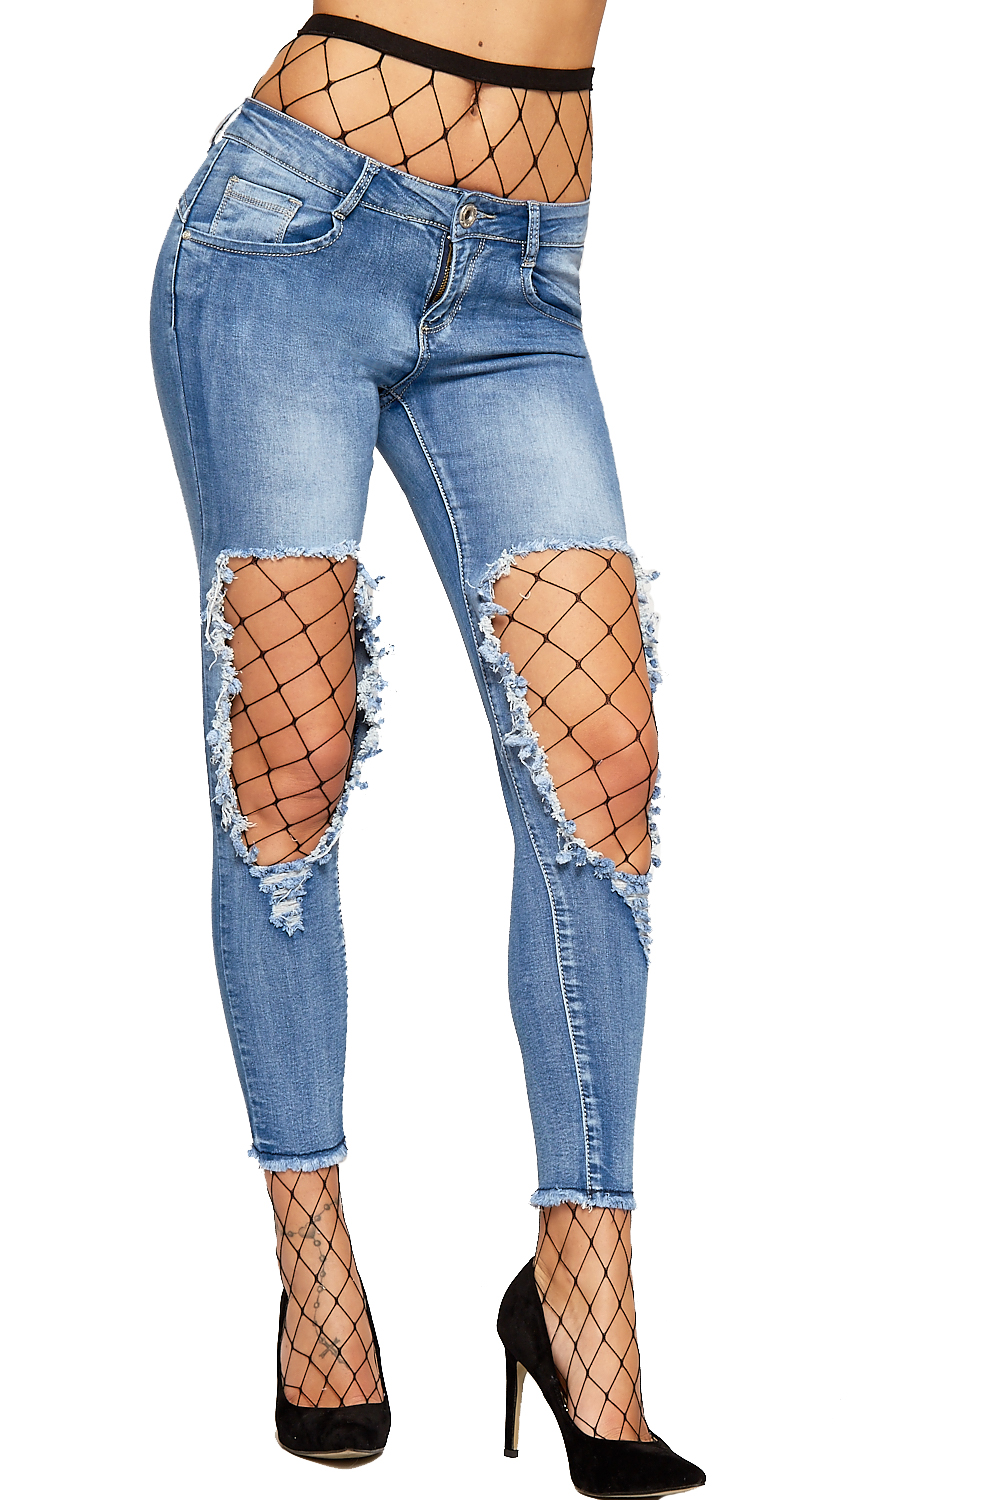 Womens Distressed Stonewash Hole Knee Denim Jeans Ladies Ripped Trousers Pants | eBay